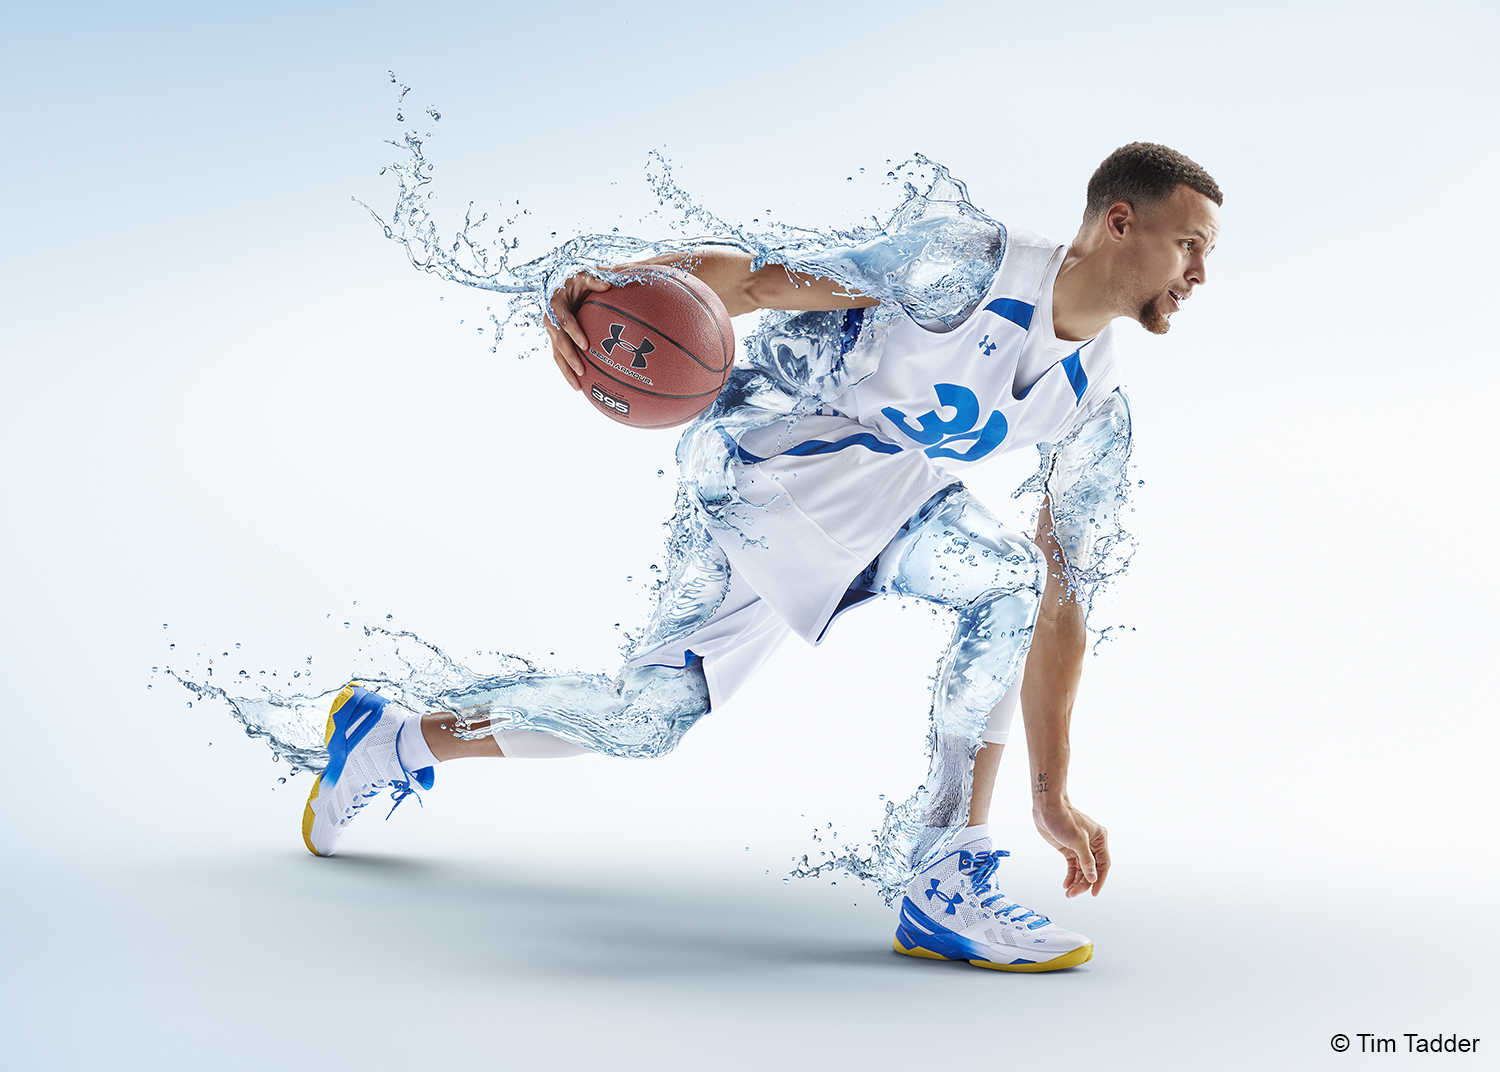 Tim Tadder's Brita Steph Curry Ad